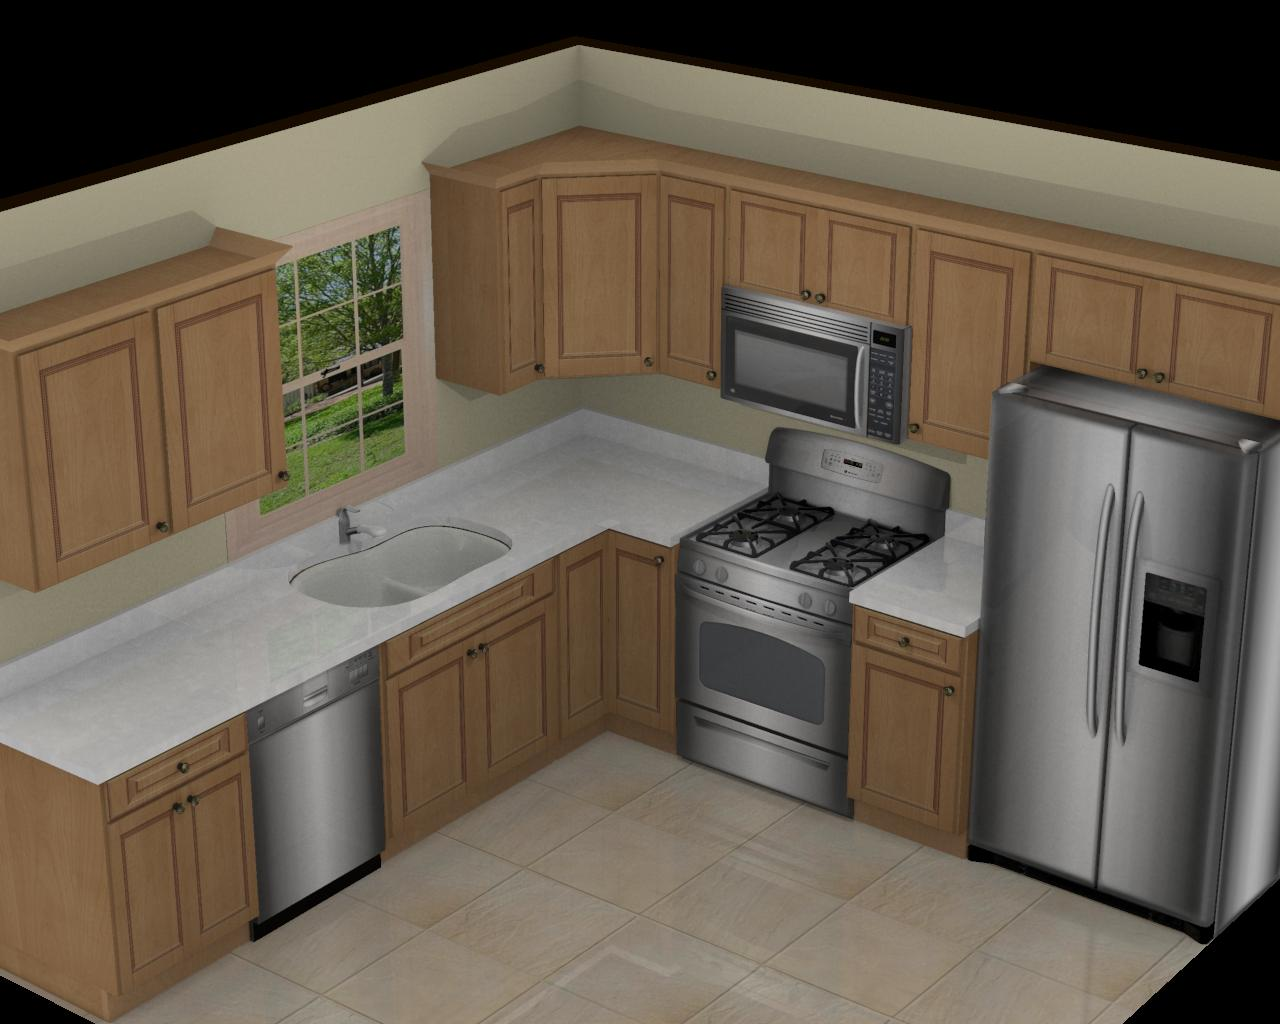 10x10 Kitchen Layout Ideas Of 10x10 Kitchen Remodel Decor Ideasdecor Ideas